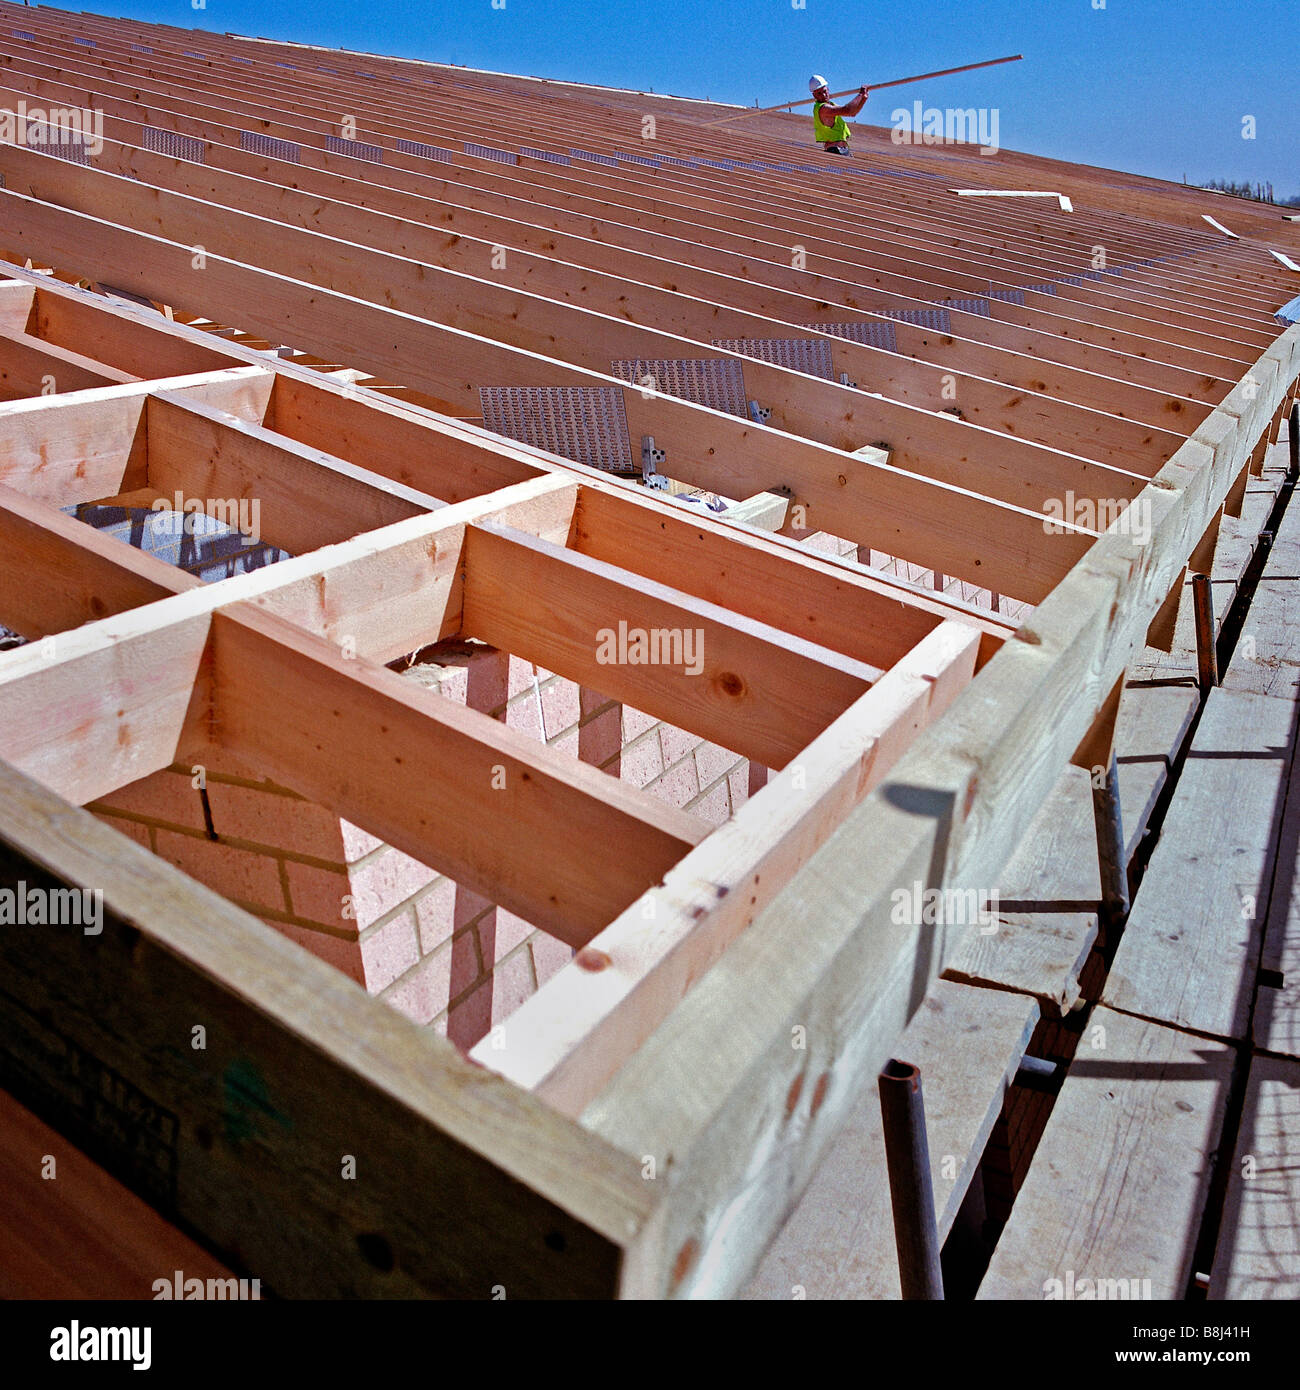 Prefabricated Roofs